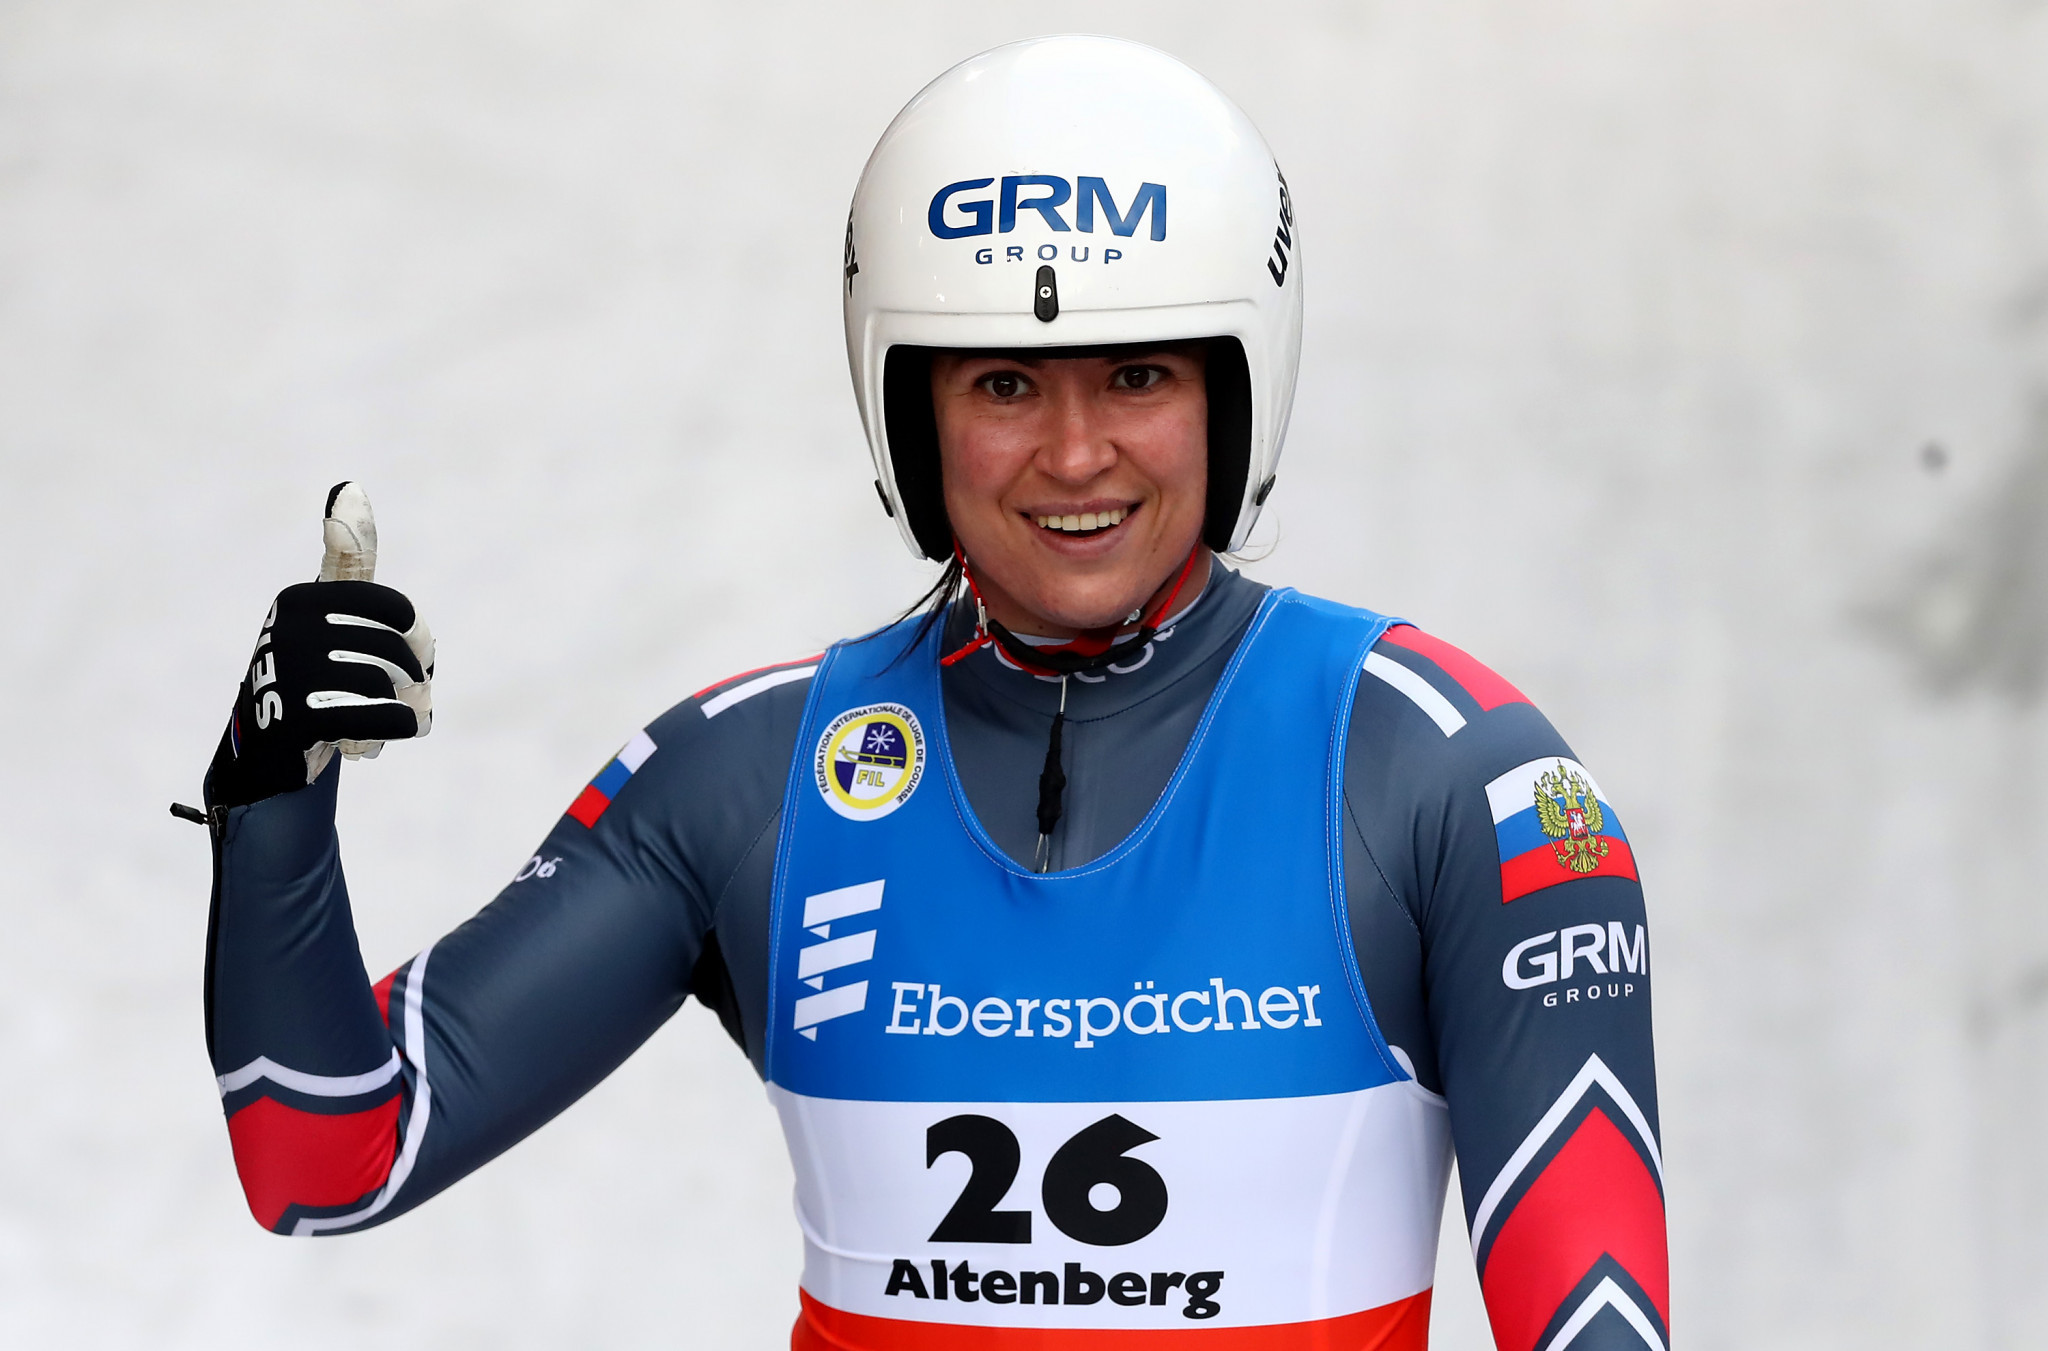 Ivanova triumphs at FIL Luge World Cup in Altenberg